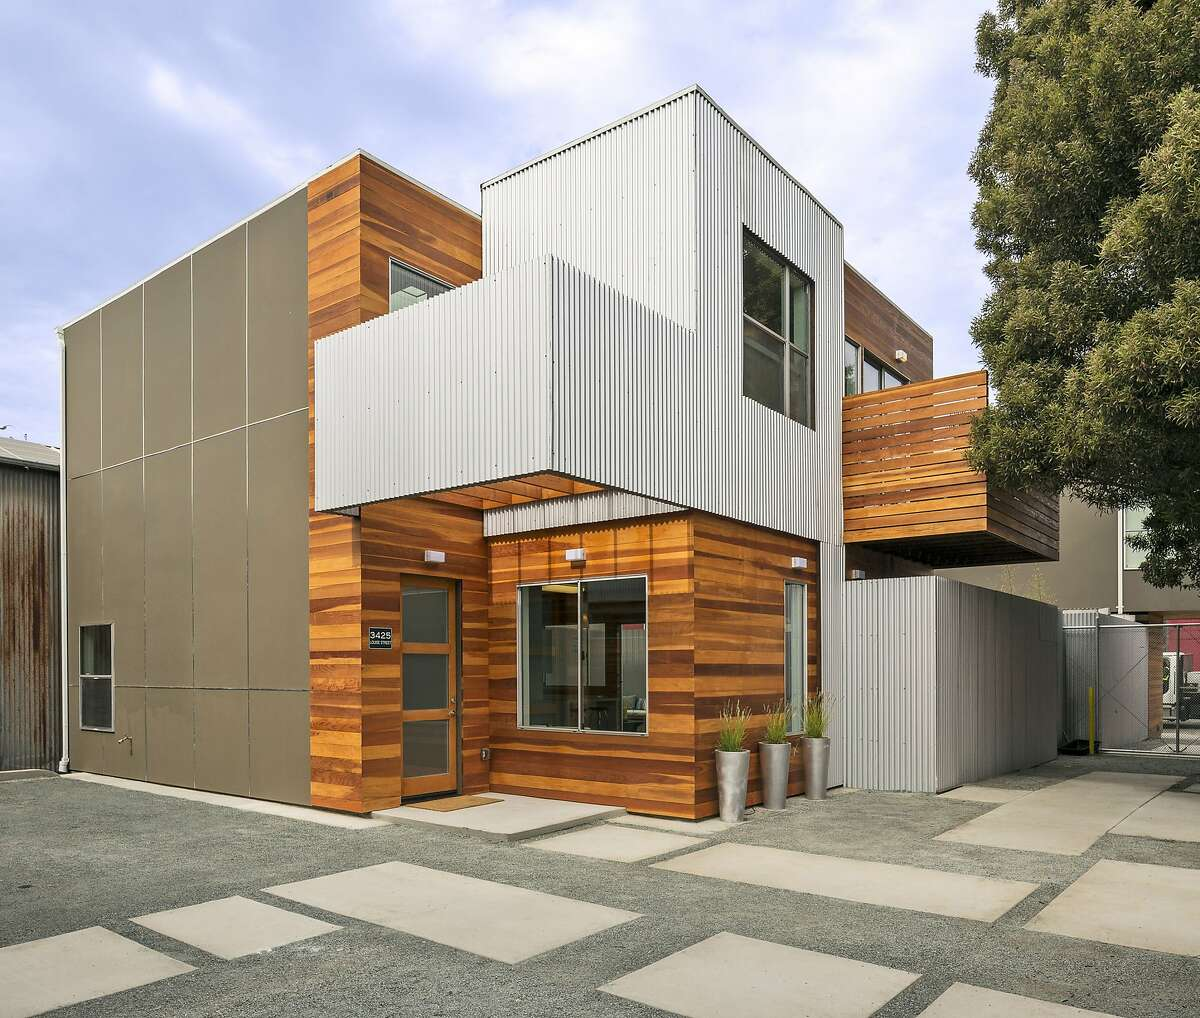 3425 Louise St. features a contemporary design highlighted by a decorative wooden facade.